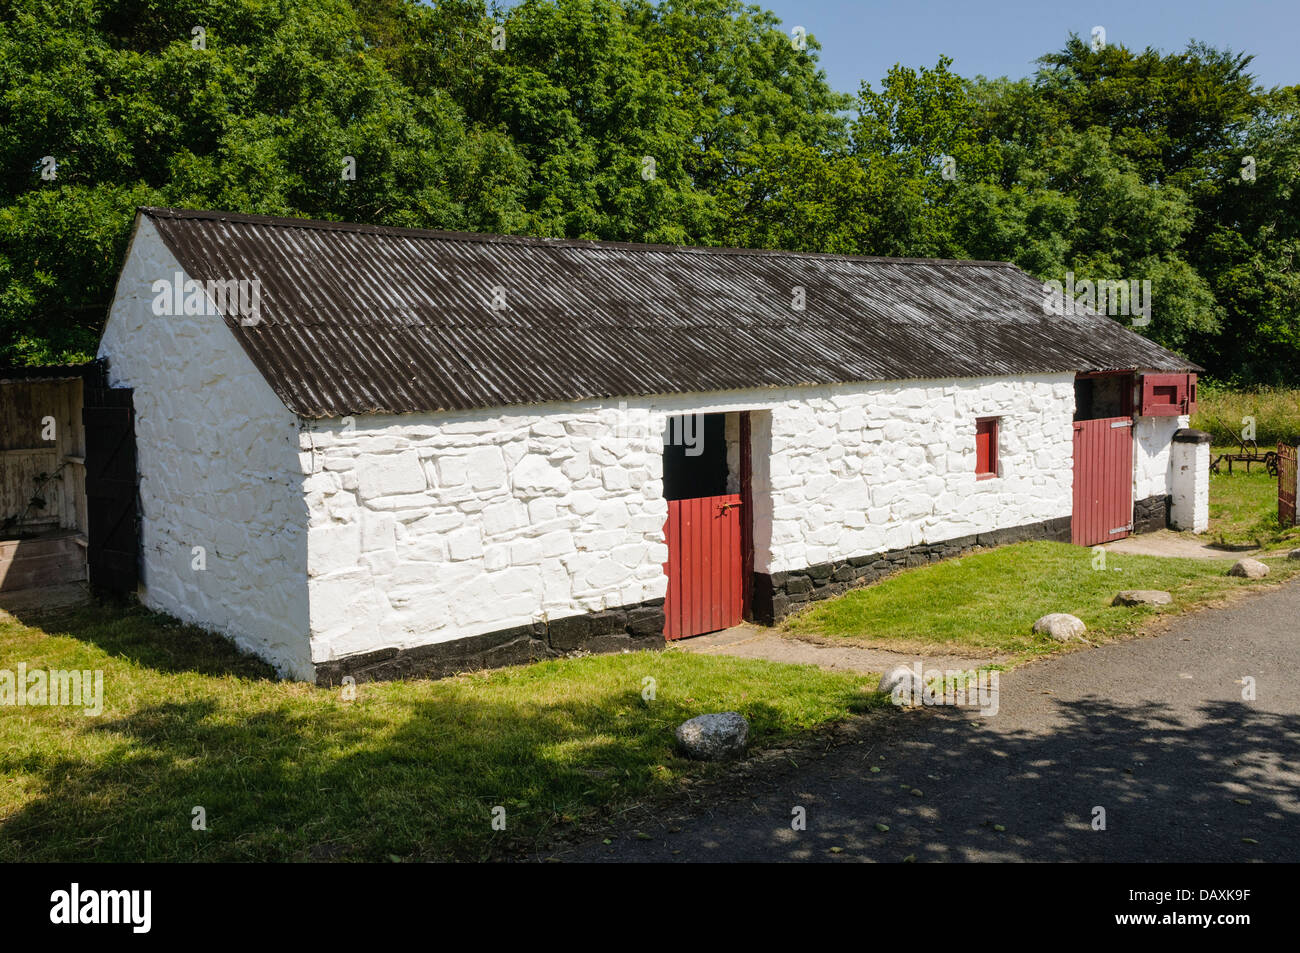 Whitewashed stables at a traditional Irish farm - Stock Image